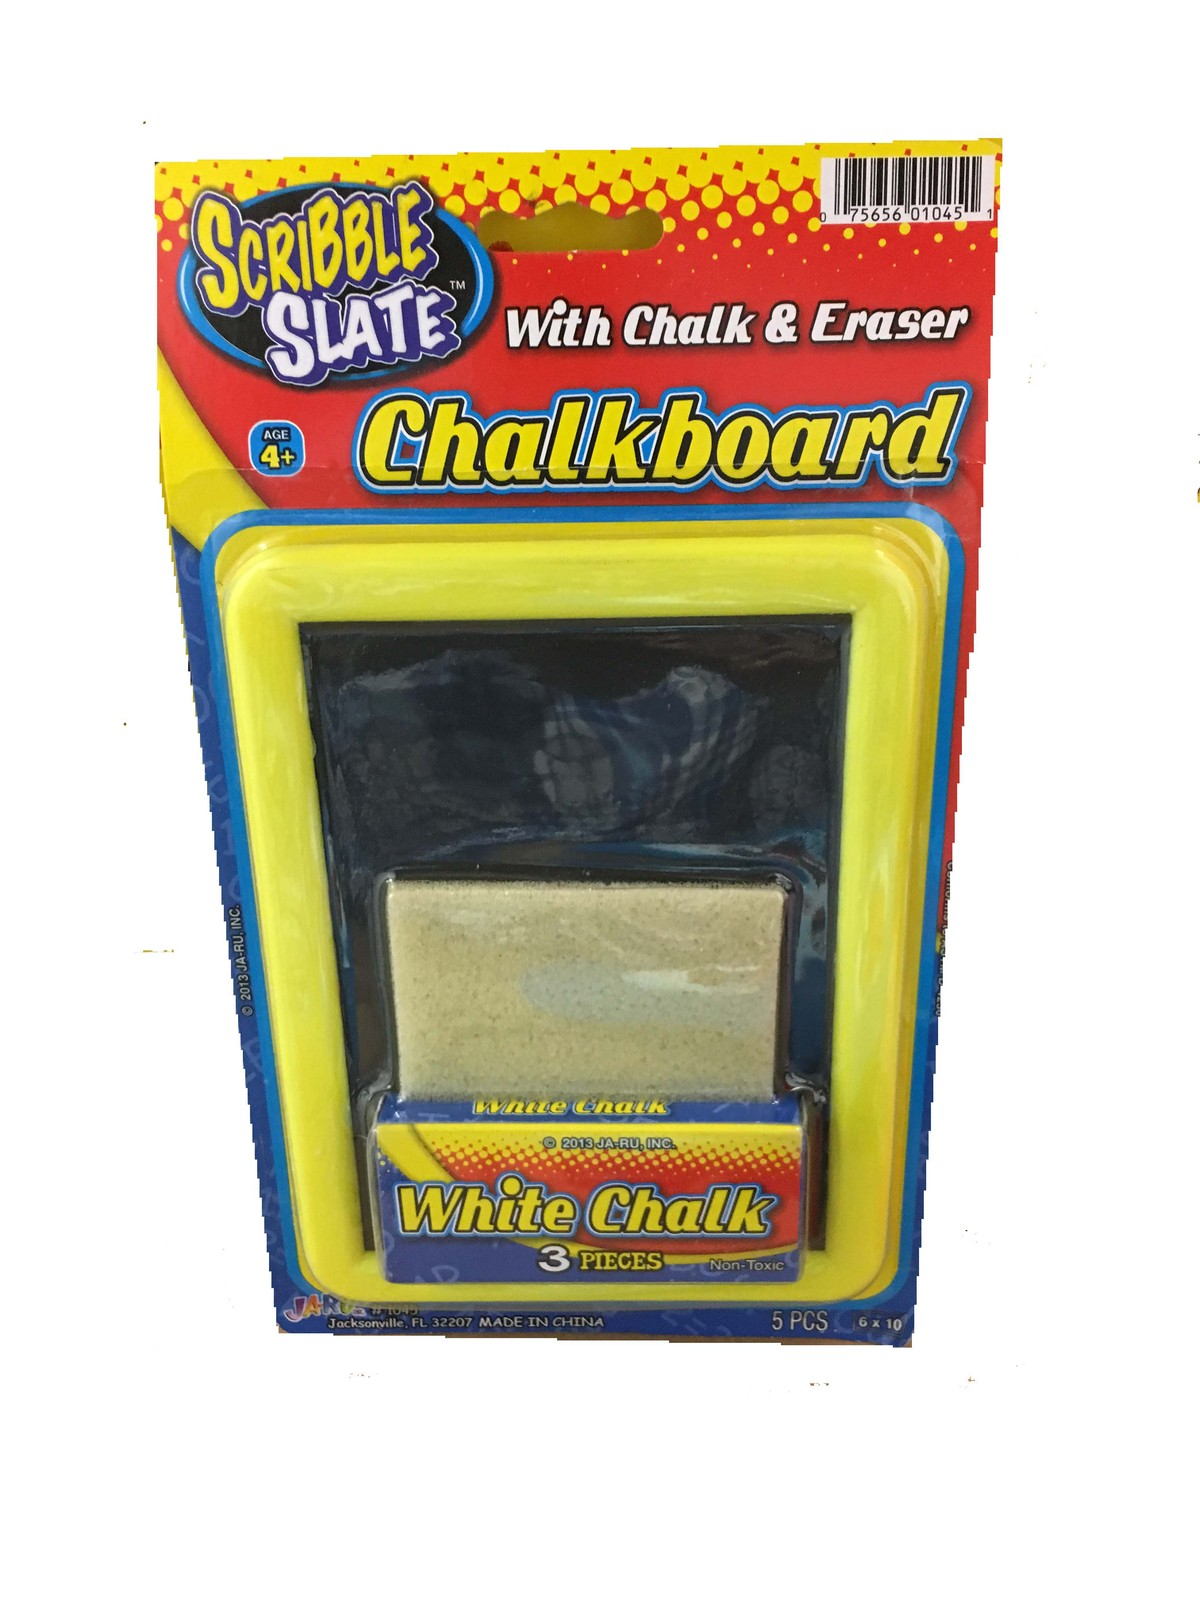 Primary image for SCRIBBLE SLATE CHALKBOARD WITH CHALK AND ERASER - 3 PIECES WHITE CHALK NON-TOXIC